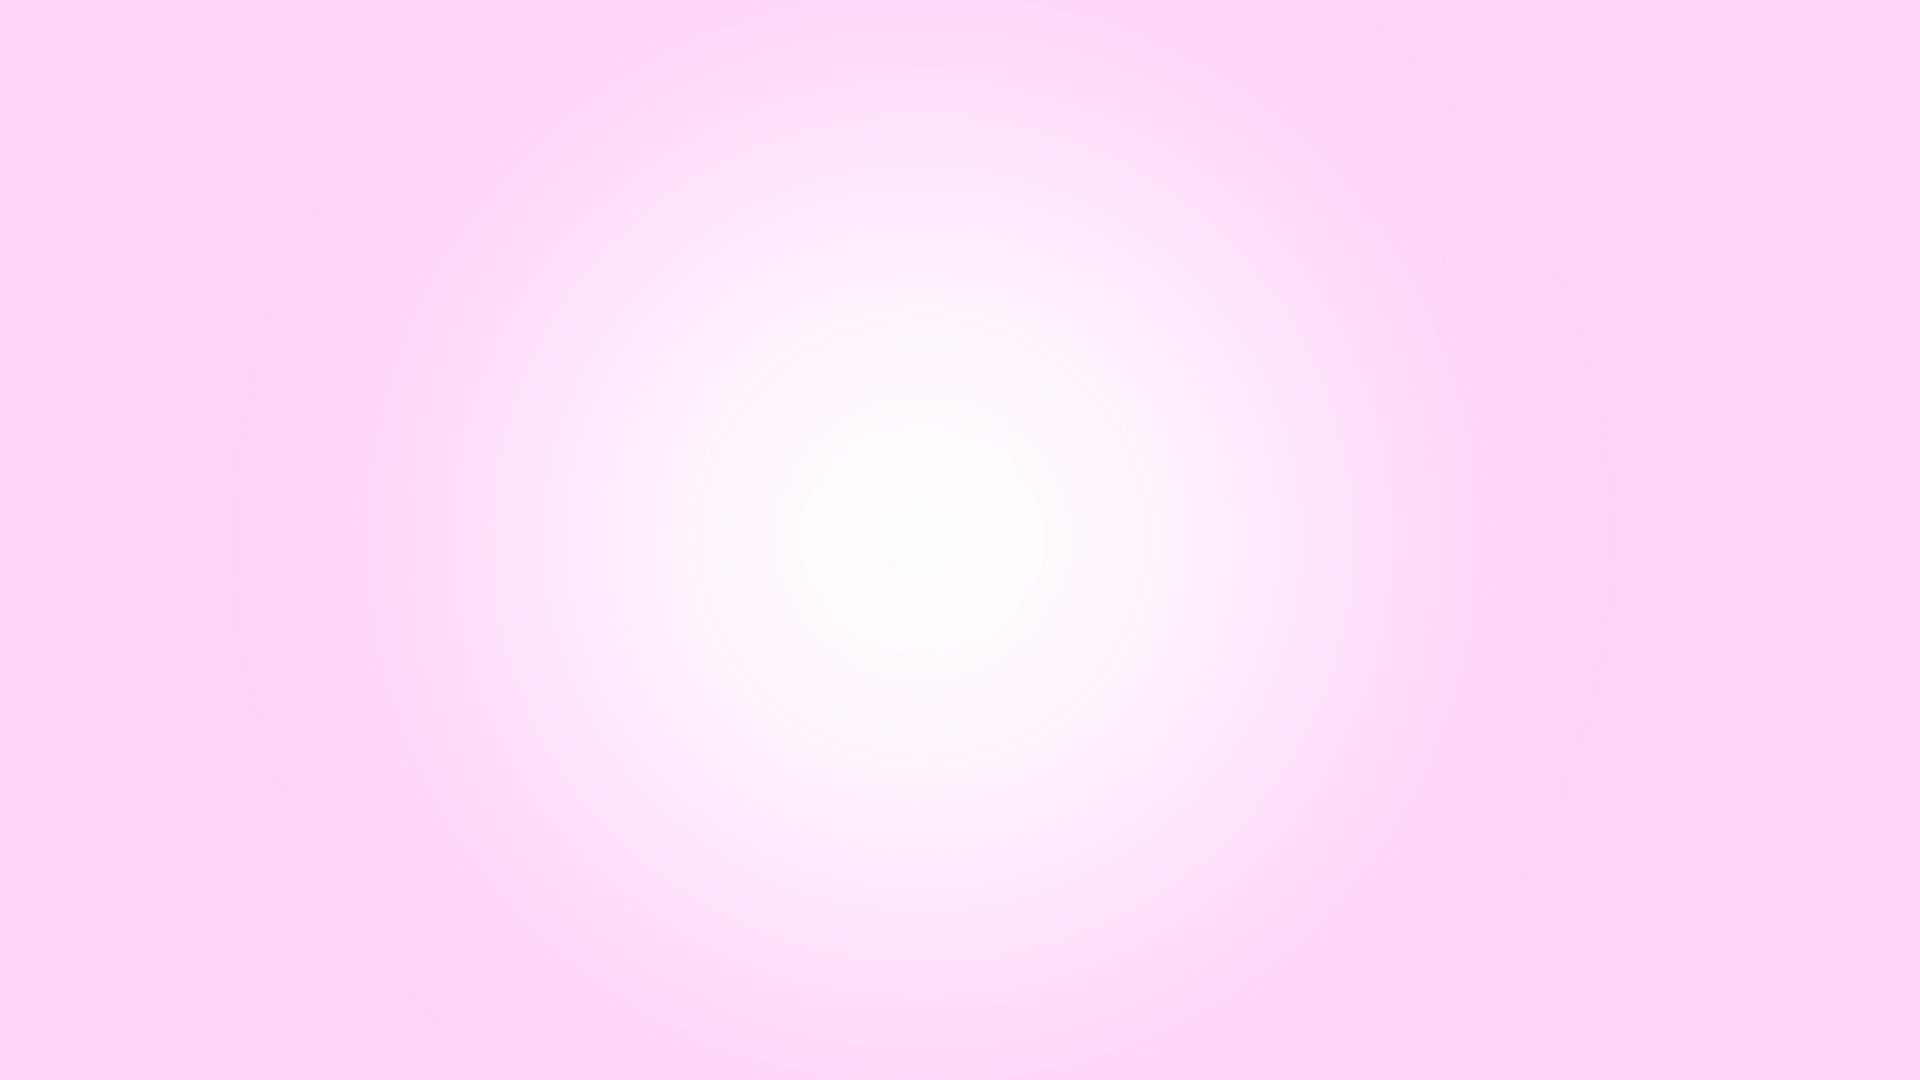 Light Pink Wallpapers Solid 1920x1080px